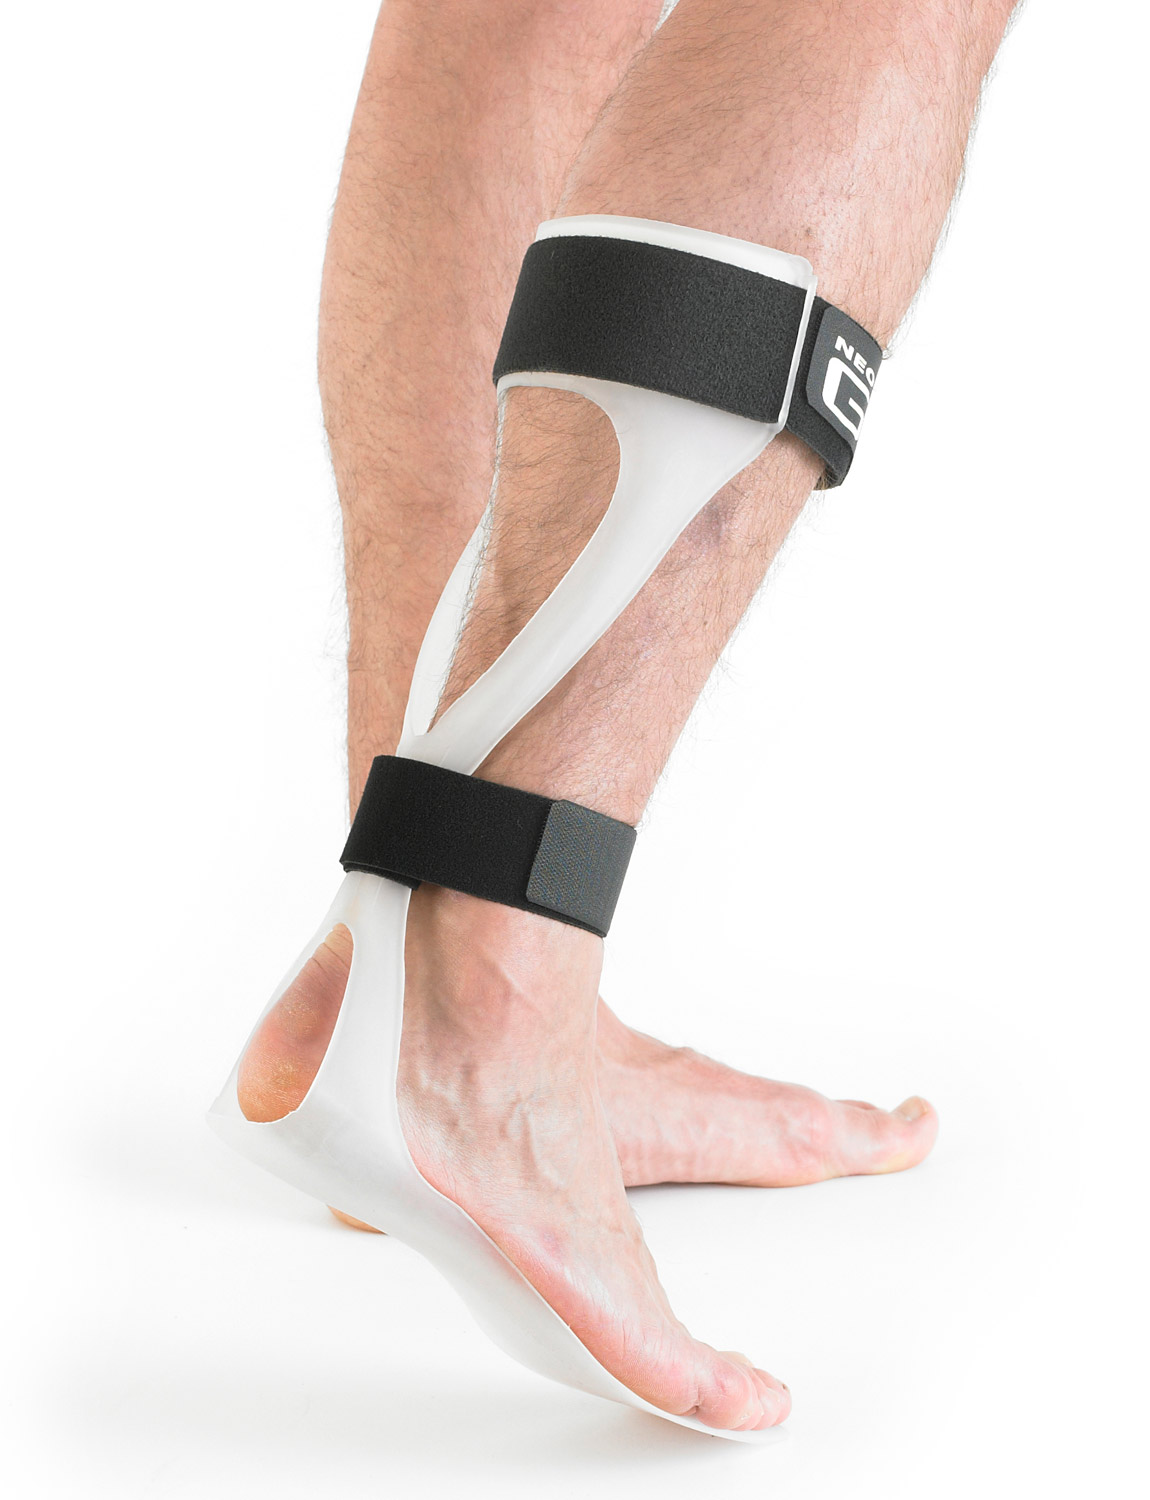 865 - REFLEX AFO/ DROP FOOT  Reflex AFO/Drop Foot helps maintain the foot in a dorsiflexed position when walking, reducing the likelihood of tripping and falling as the result of foot drop.